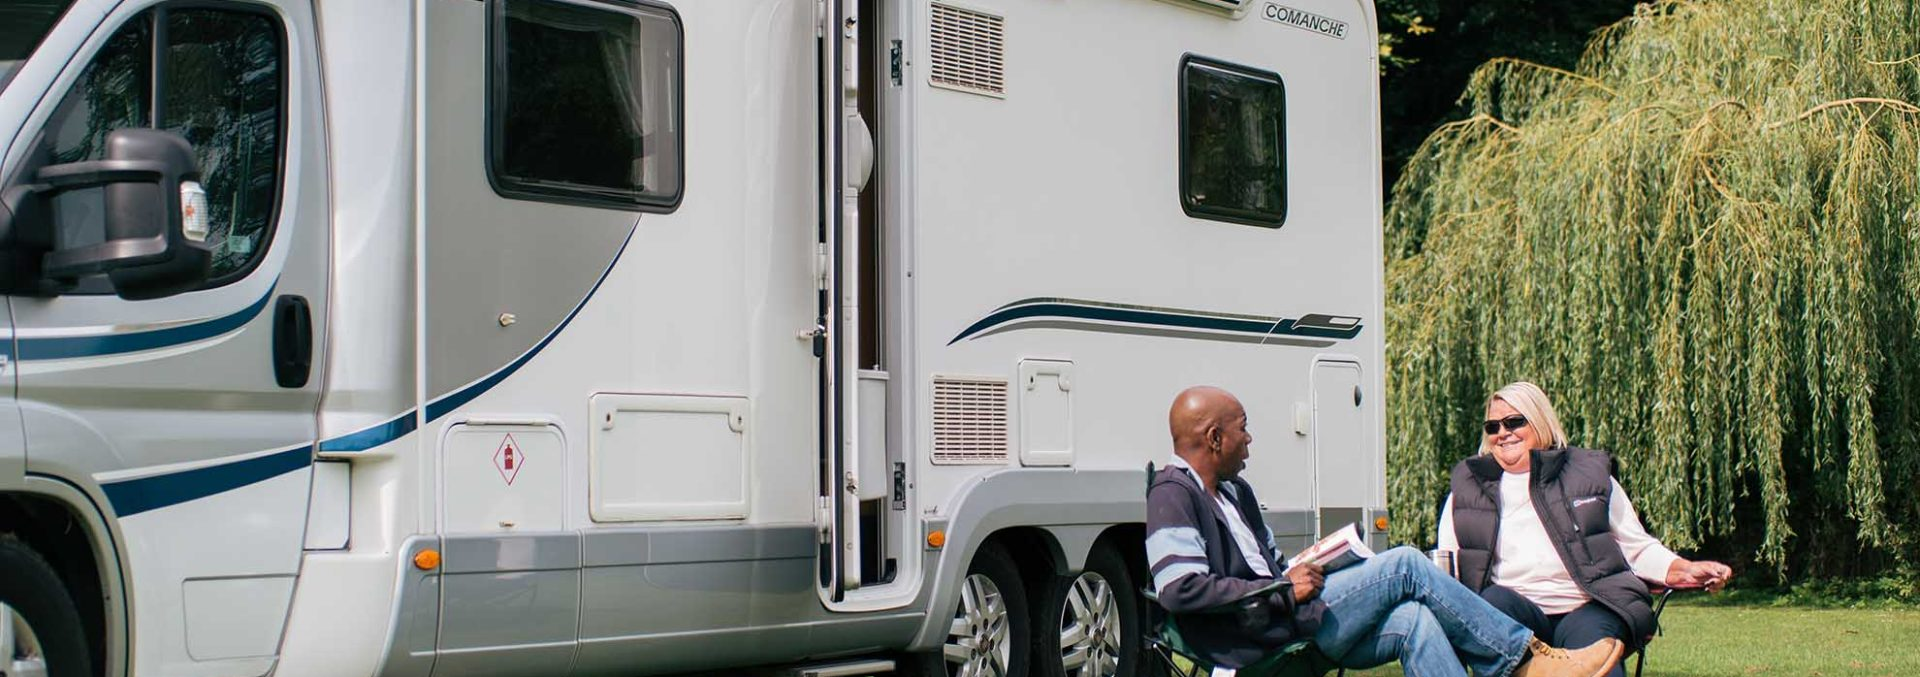 Motorhome and couple enjoying the piece of quiet of the countryside